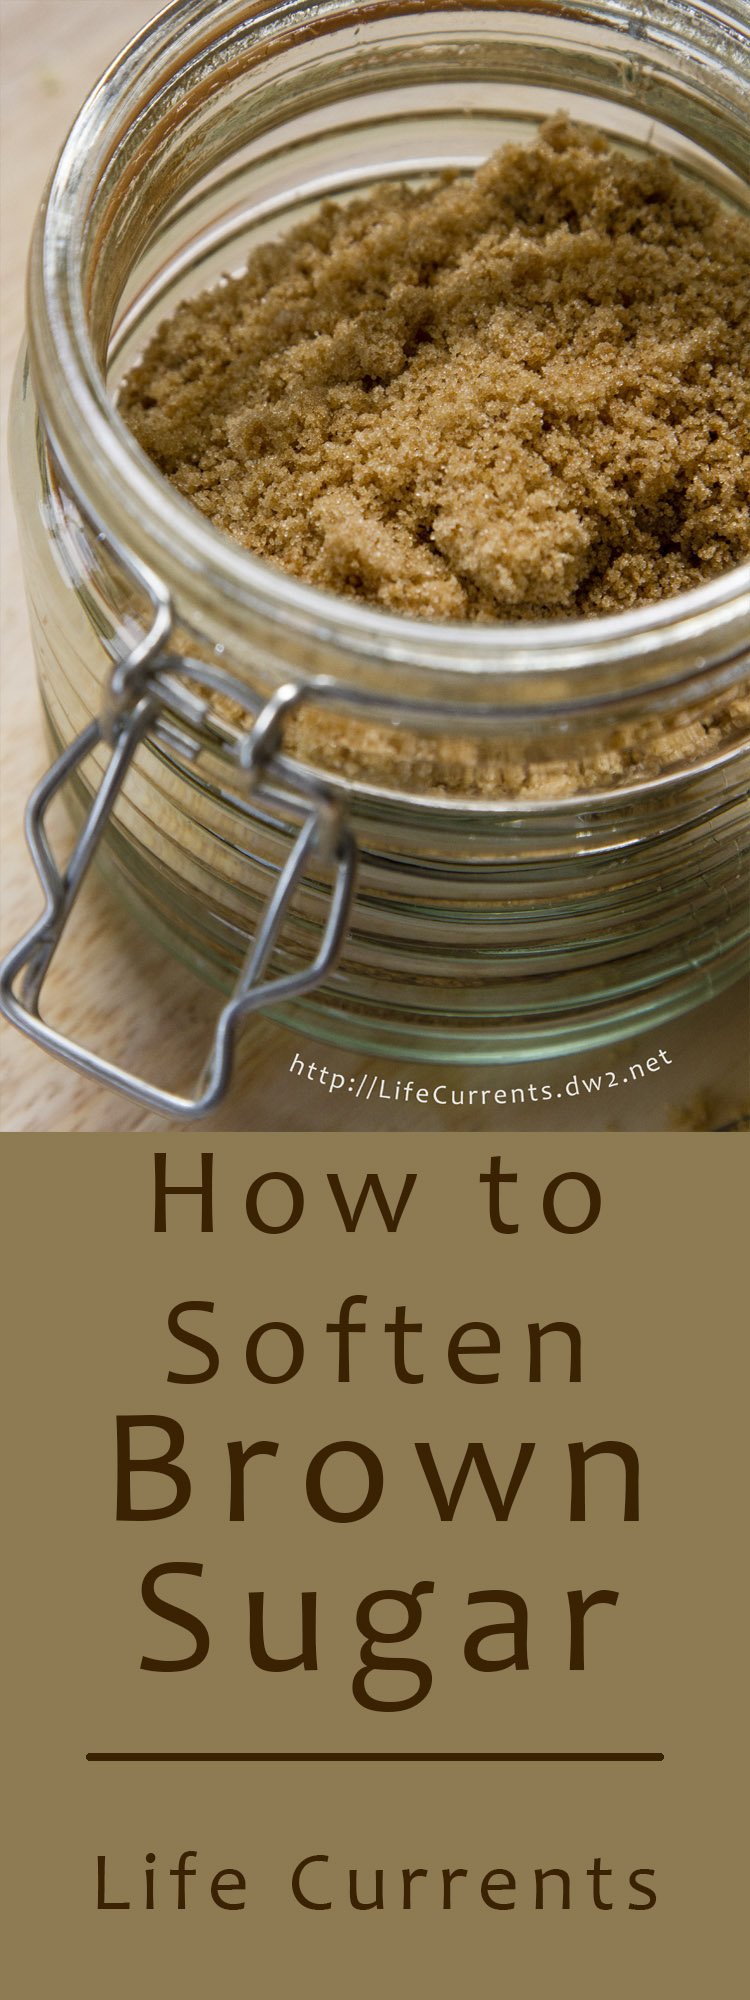 How to Soften Brown Sugar that's turned rock hard. Easy method that takes almost no time at all to make Brown Sugar soft again